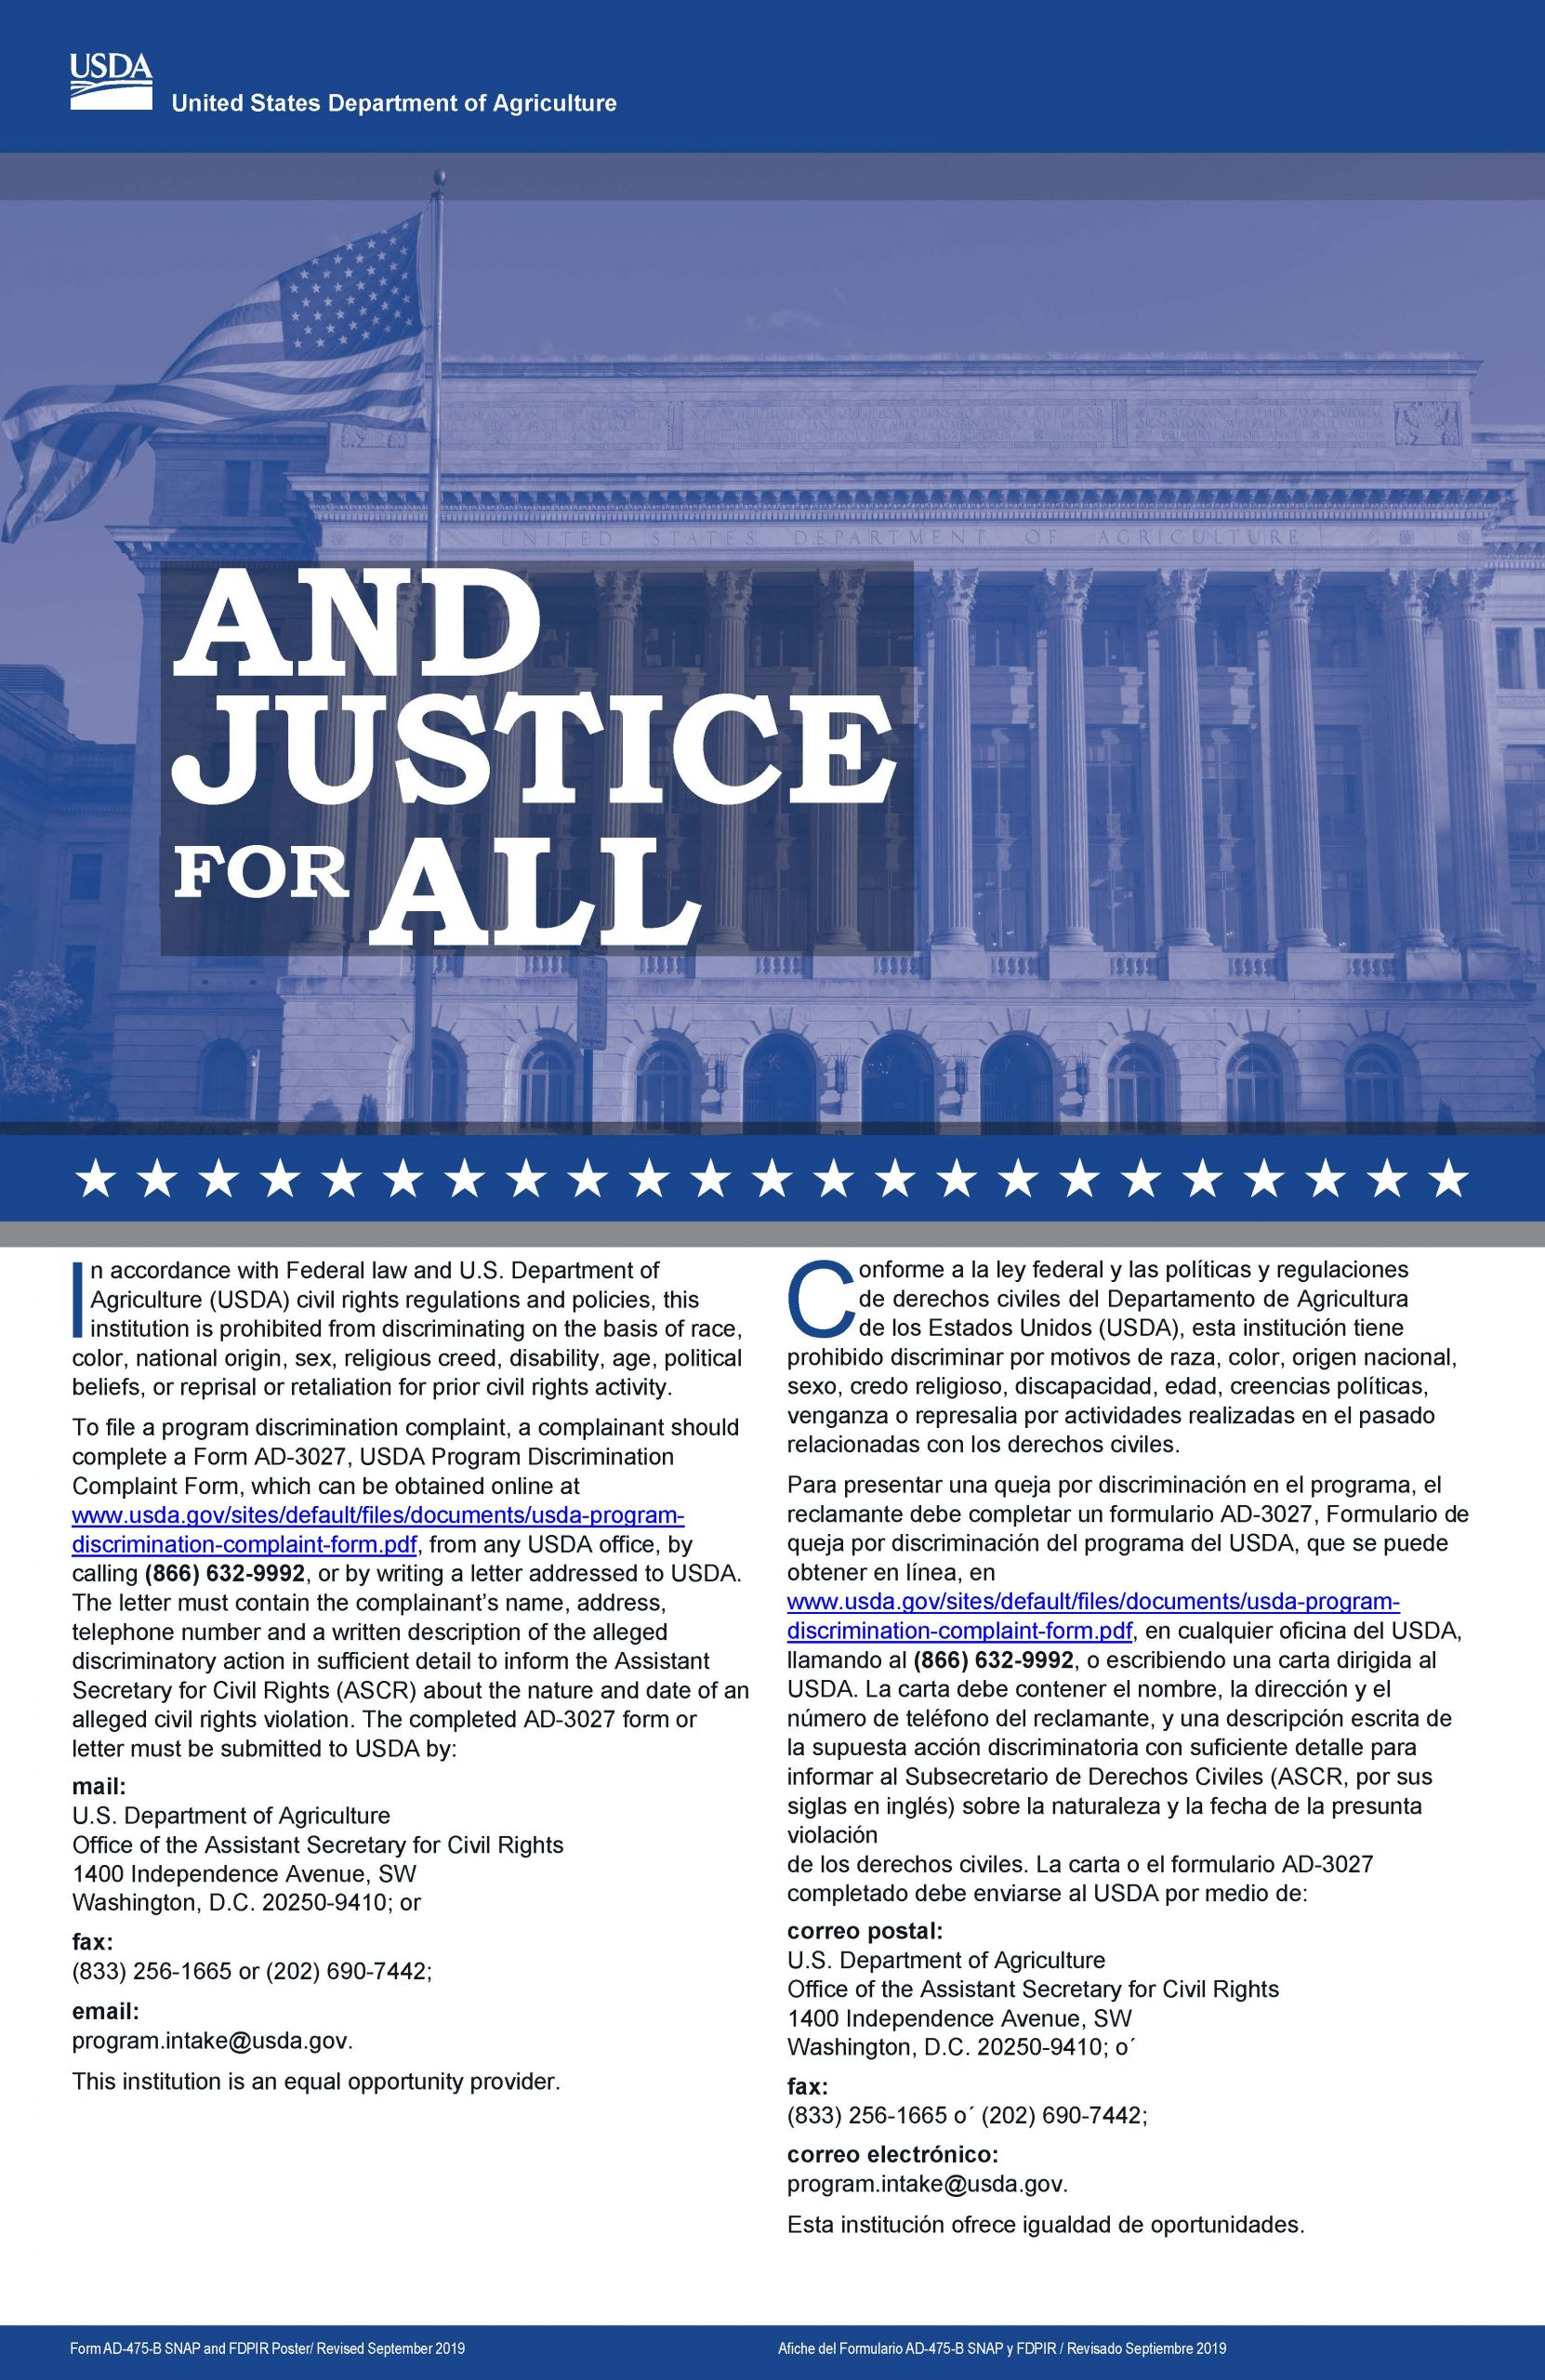 USDA Justice for All poster